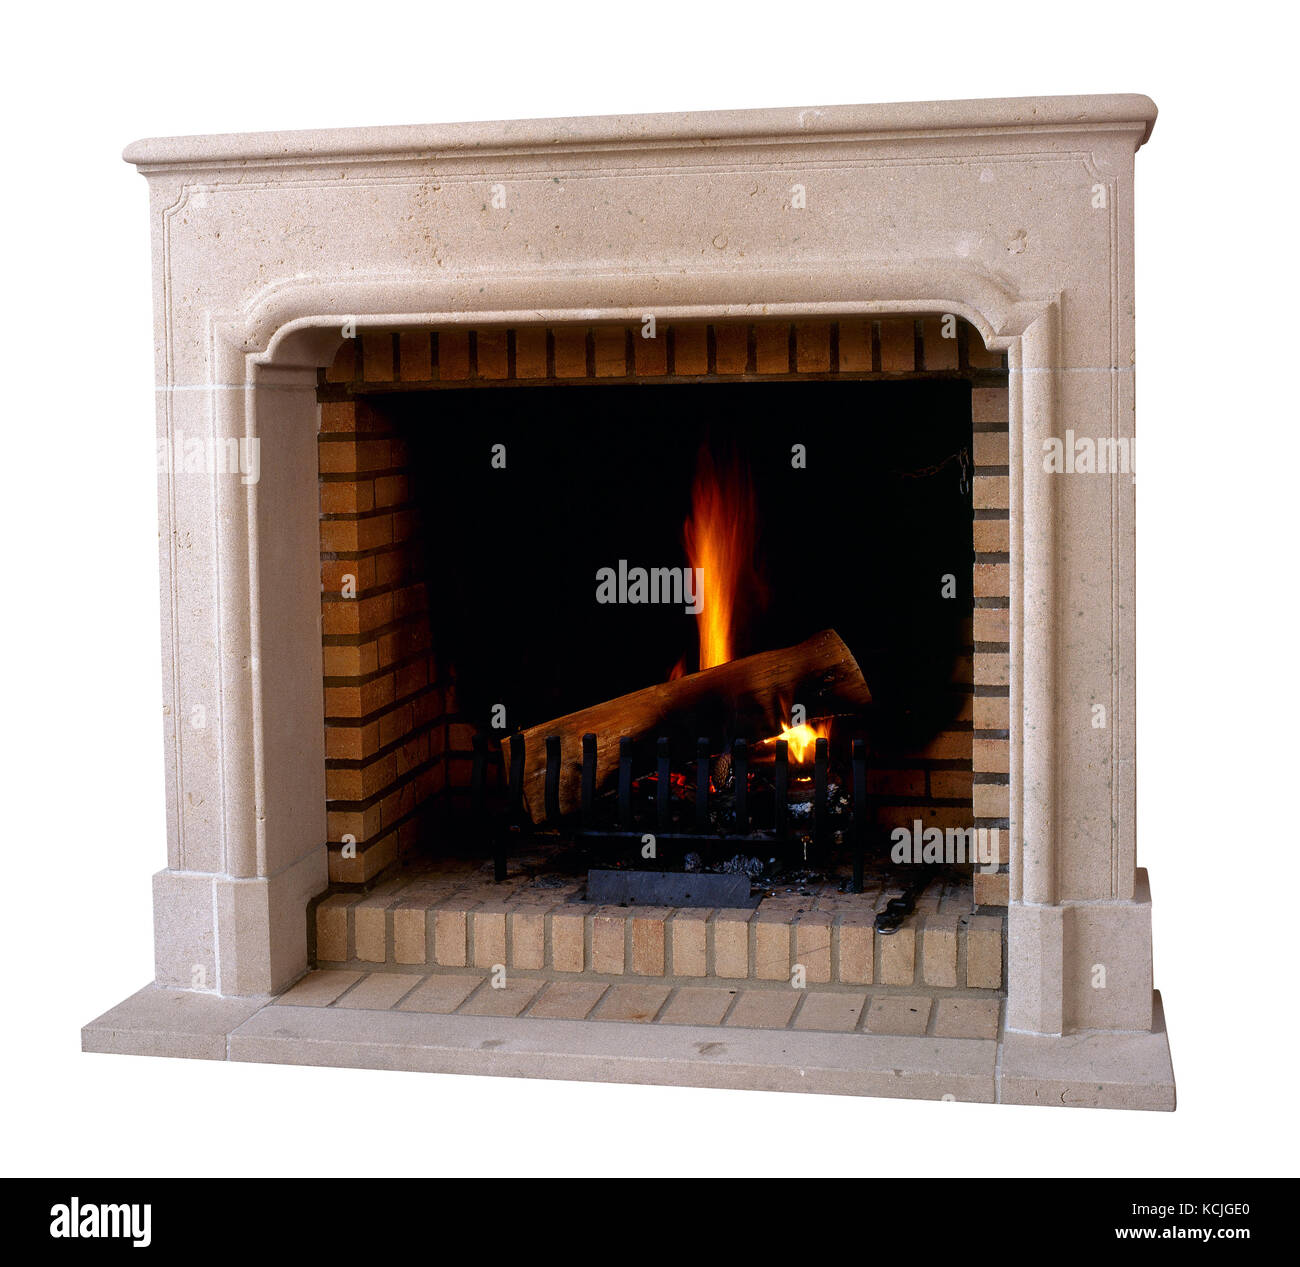 marble fireplace stock photos u0026 marble fireplace stock images alamy